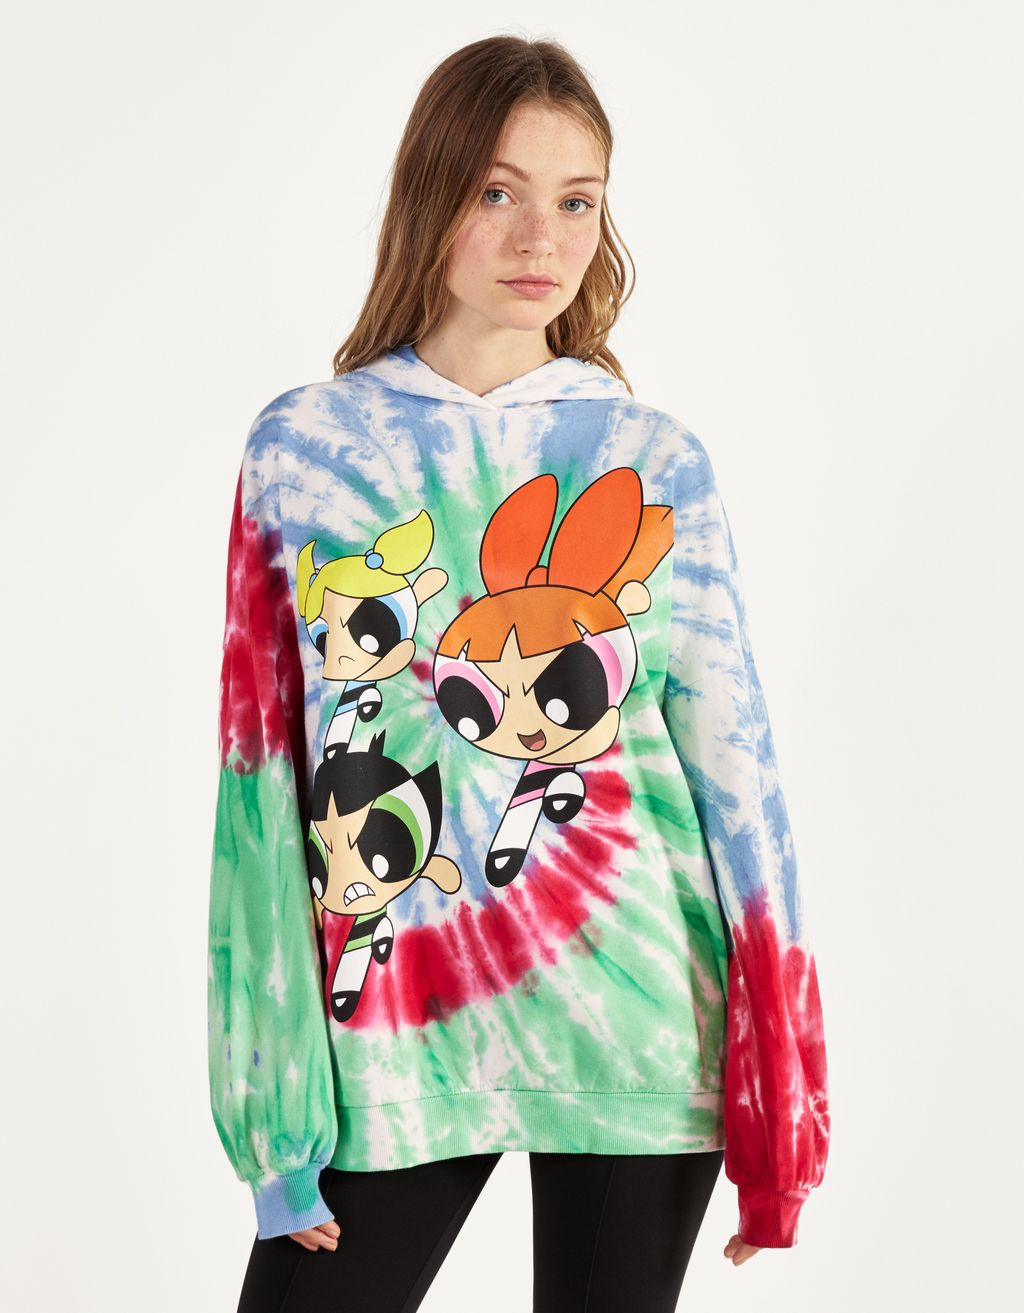 The Powerpuff Girls x Bershka sweatshirt